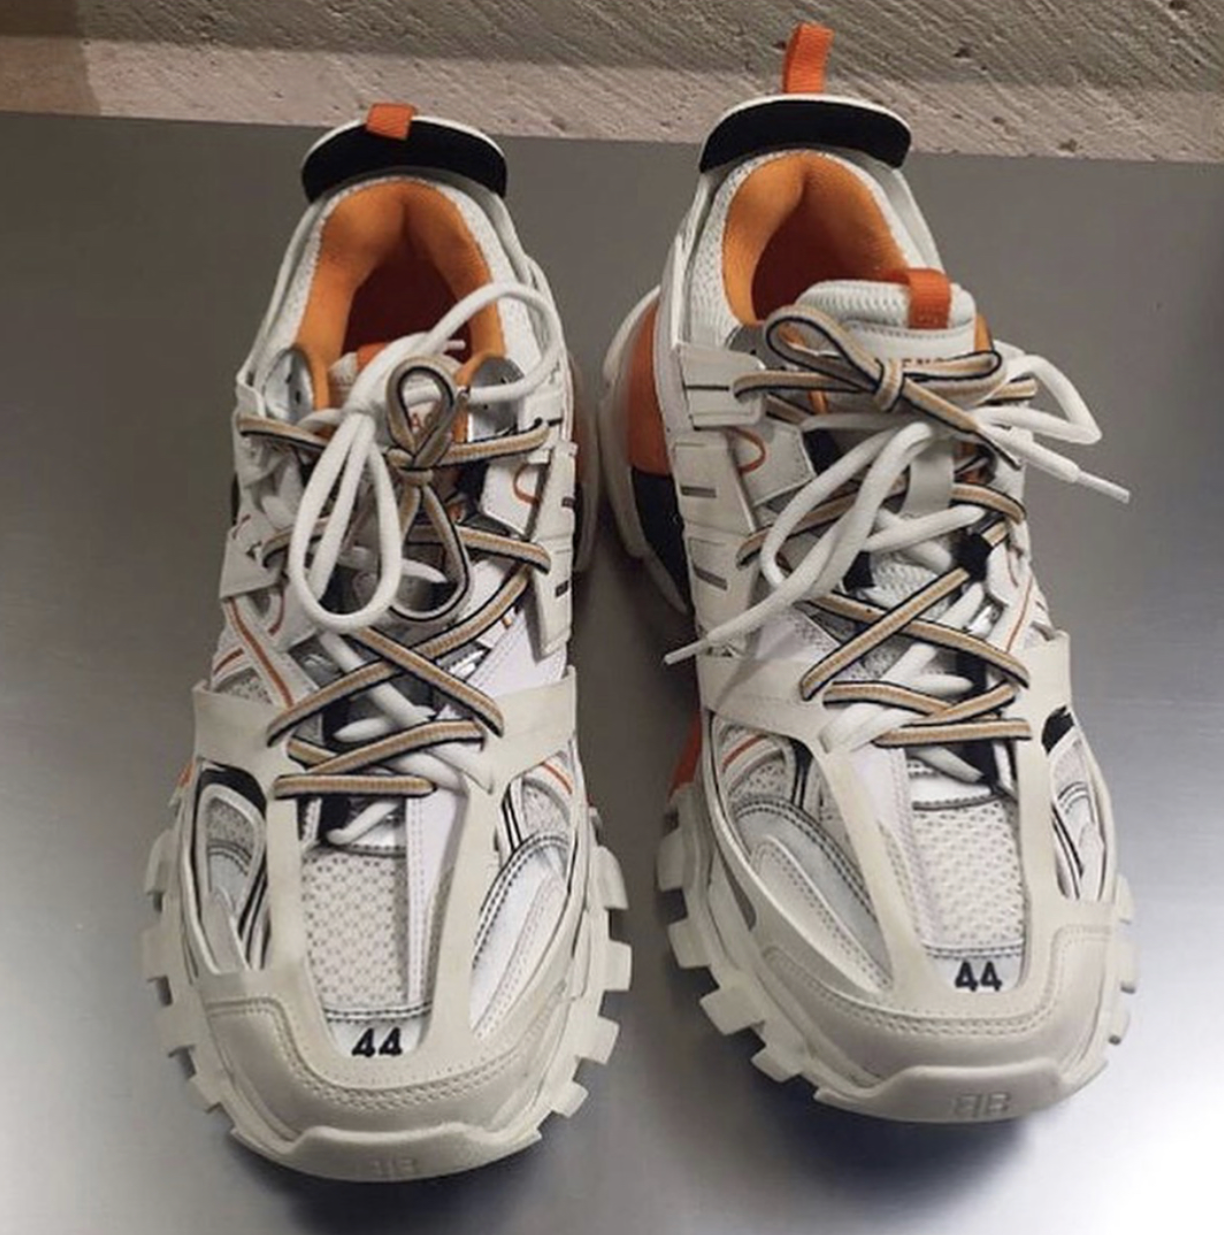 Take A Look At Balenciaga's New Trekking Inspired Trainer